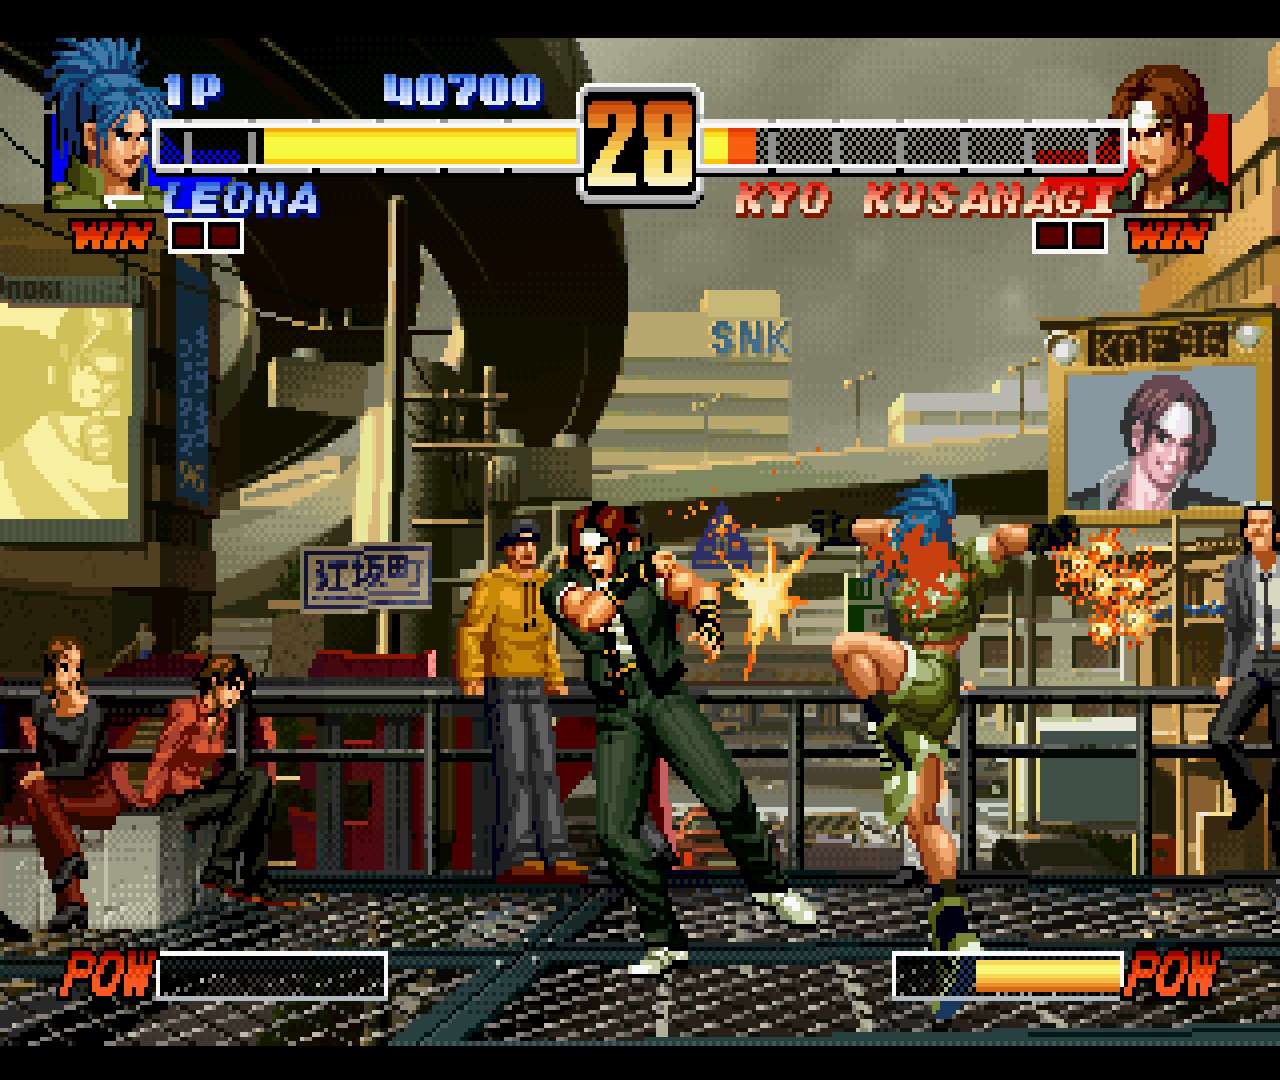 Figure 22 - Beautiful animation for both the fighters and for the background